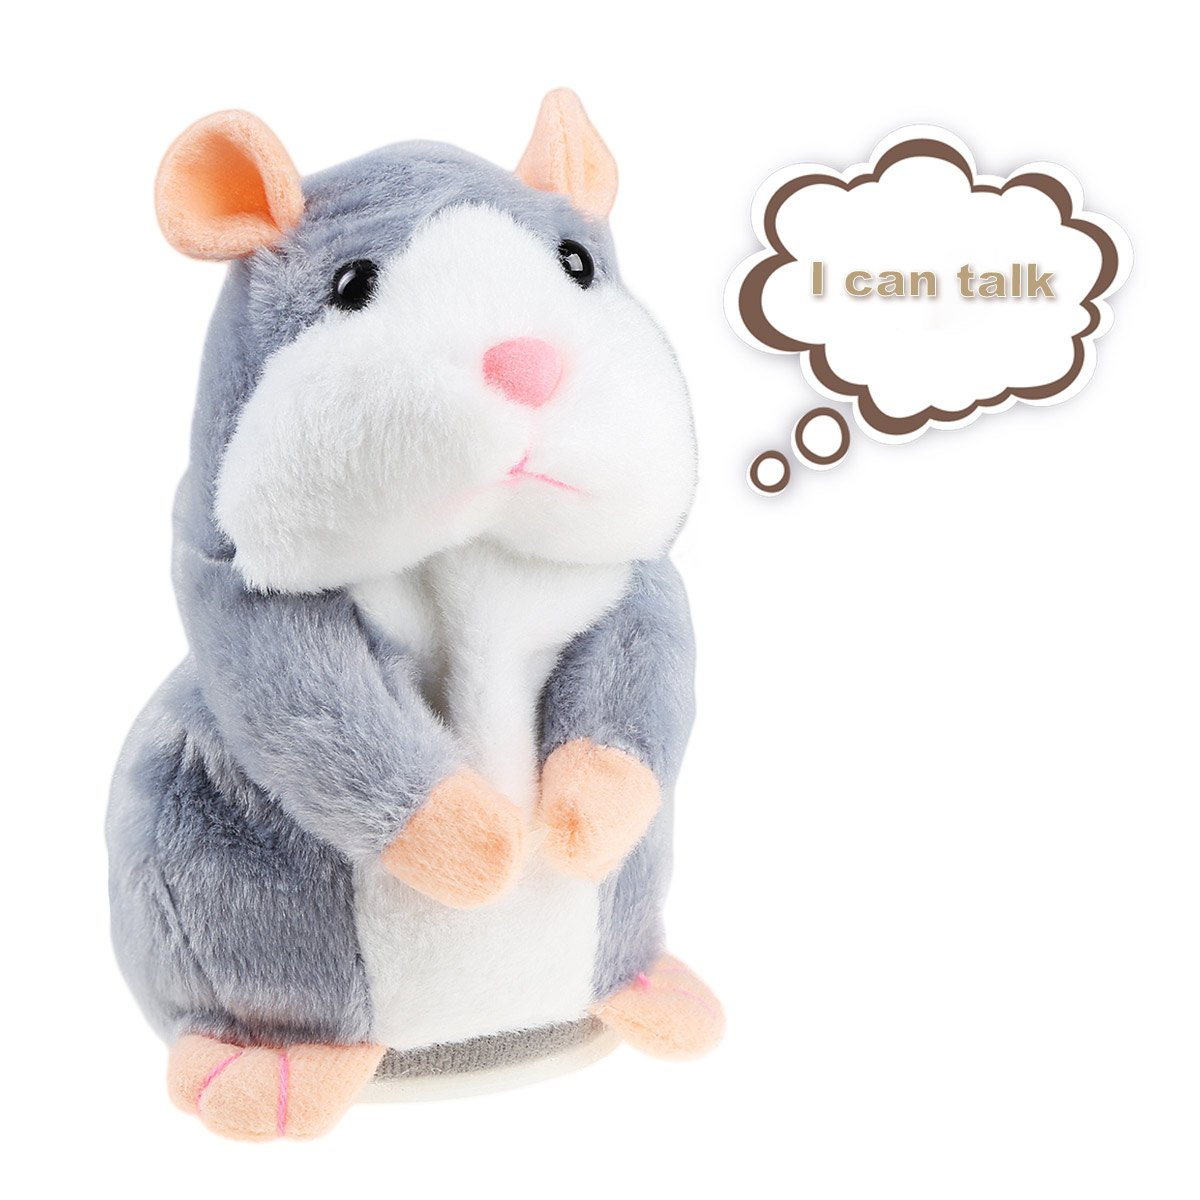 Talking Hamster Plush Toy, Repeat What You Say Funny Kids Stuffed Toys, Talking Record Plush Interactive Toys for Valentines Day, Birthday Gift, Kids Early Learning, Thanksgiving, IDEAPRO